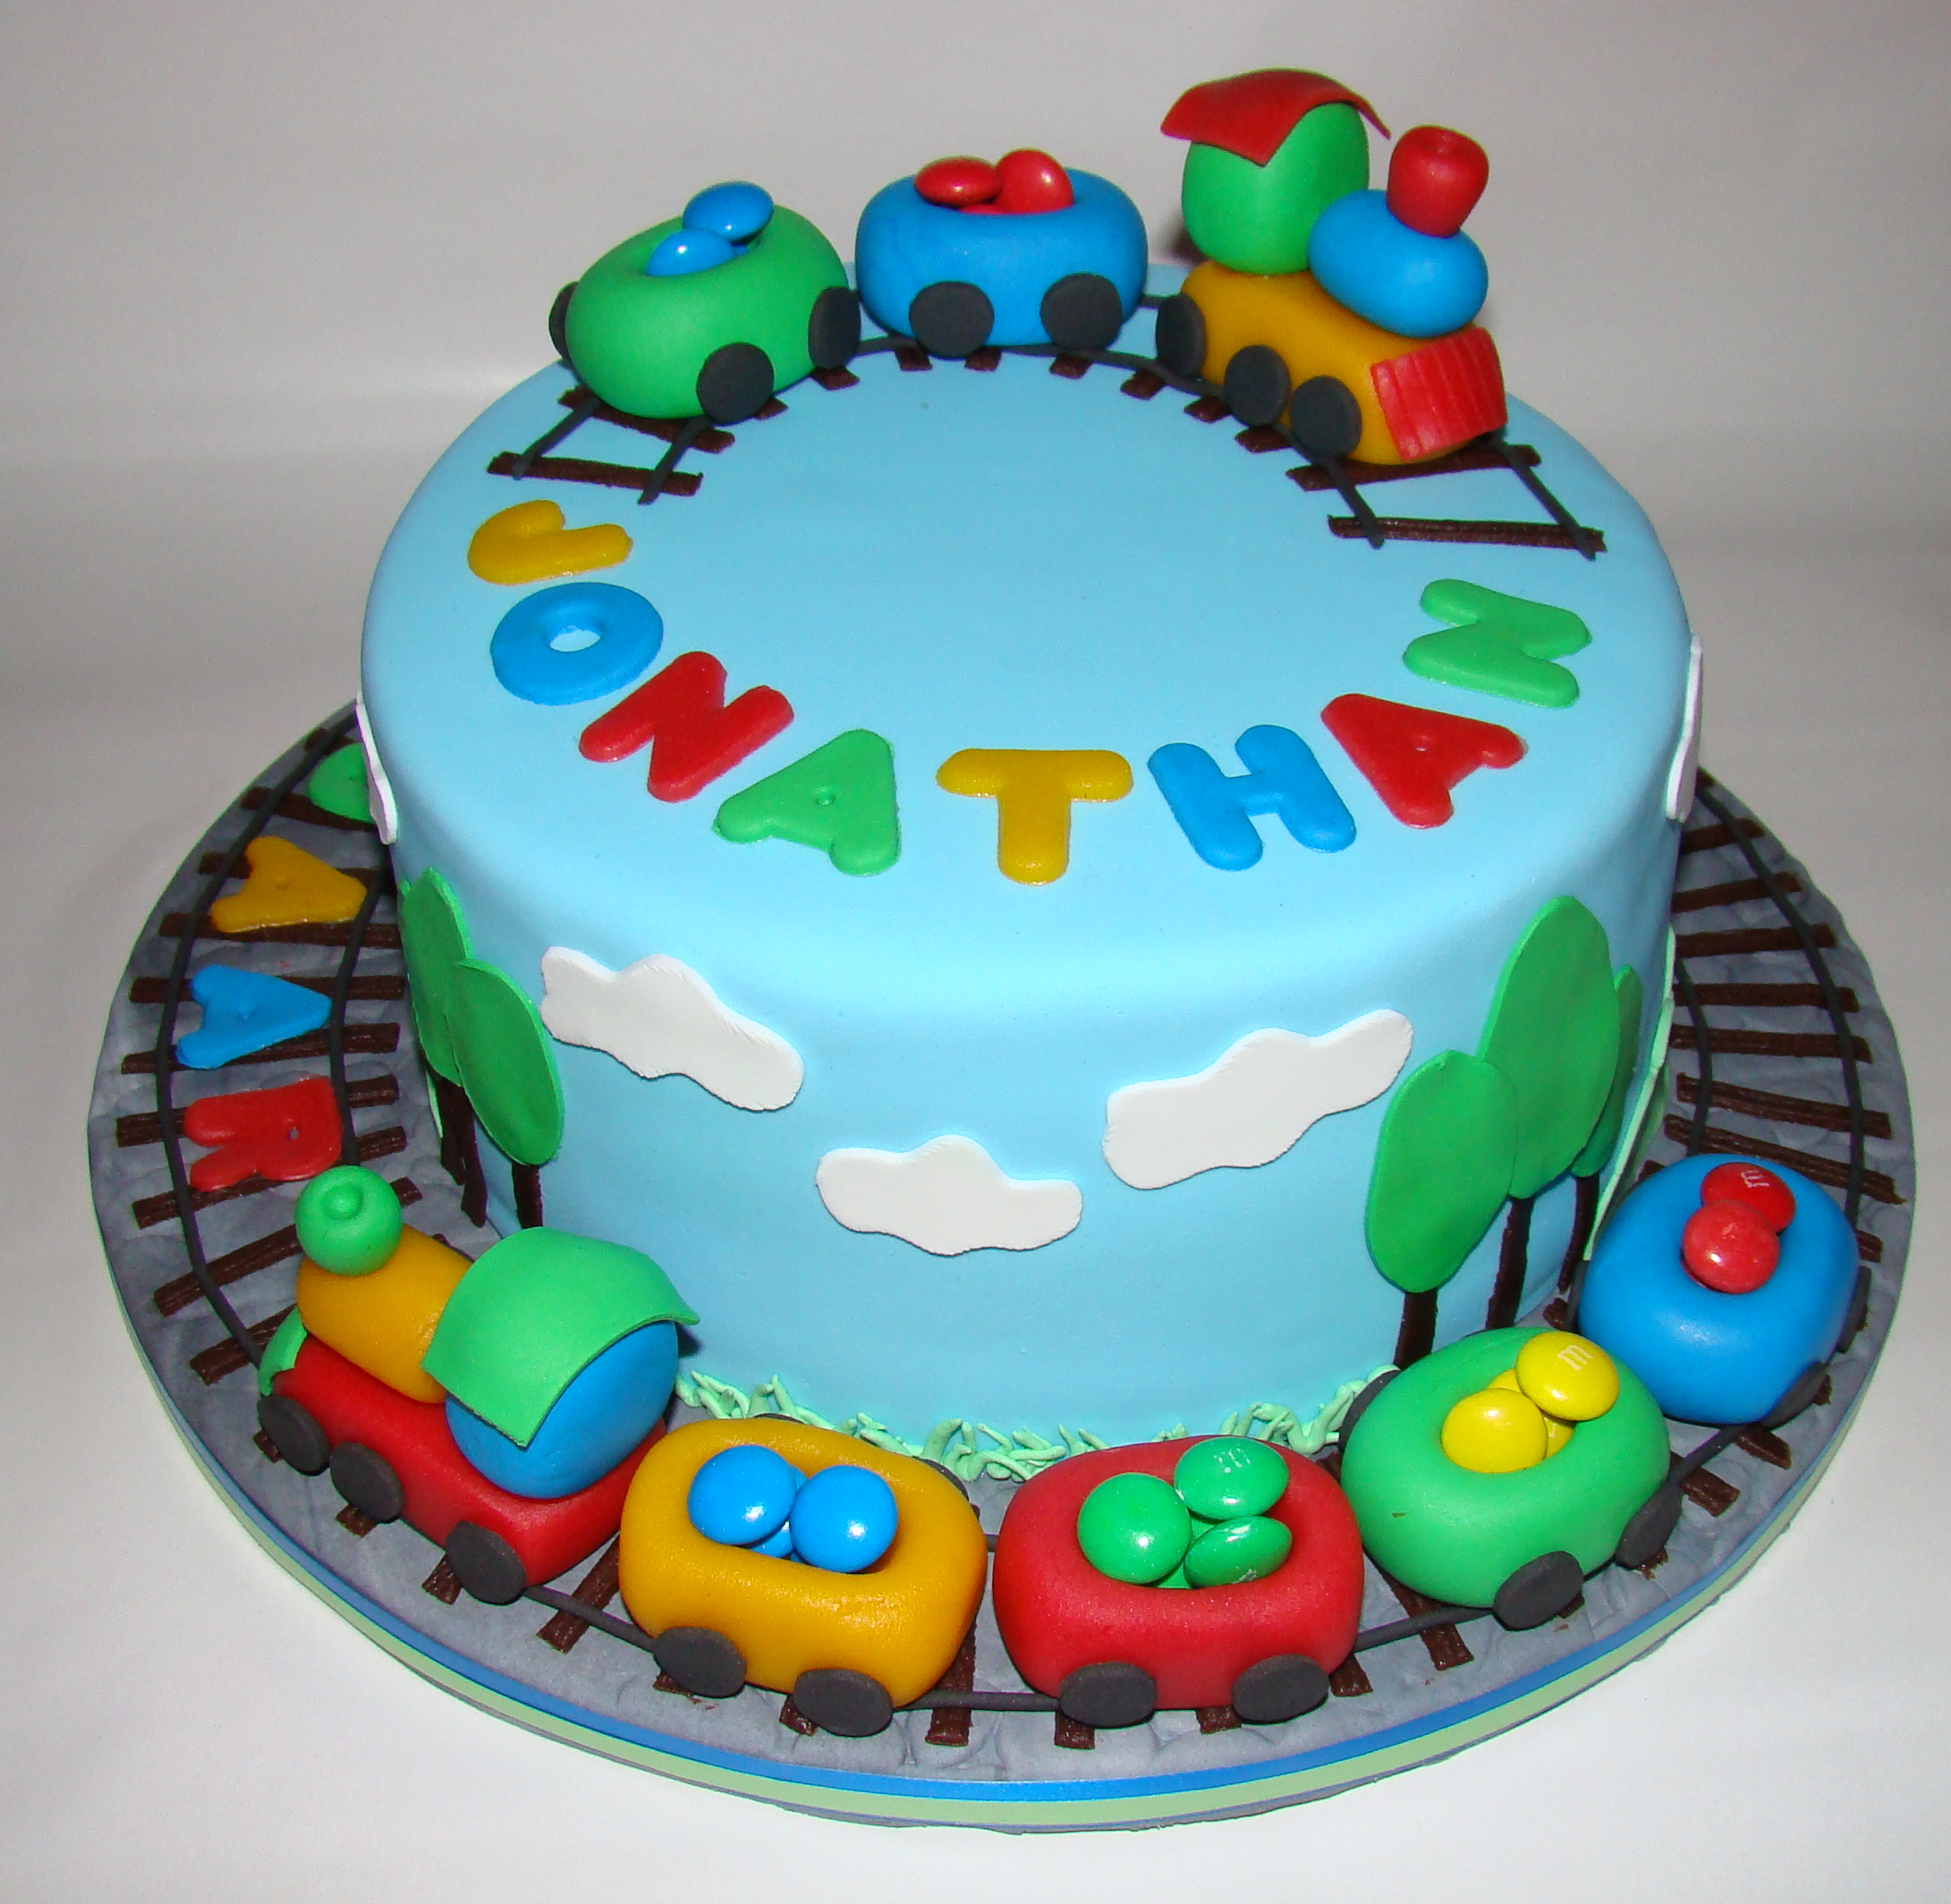 Groovy Traincake For A Two Years Old Boy With Images 2 Year Old Funny Birthday Cards Online Elaedamsfinfo